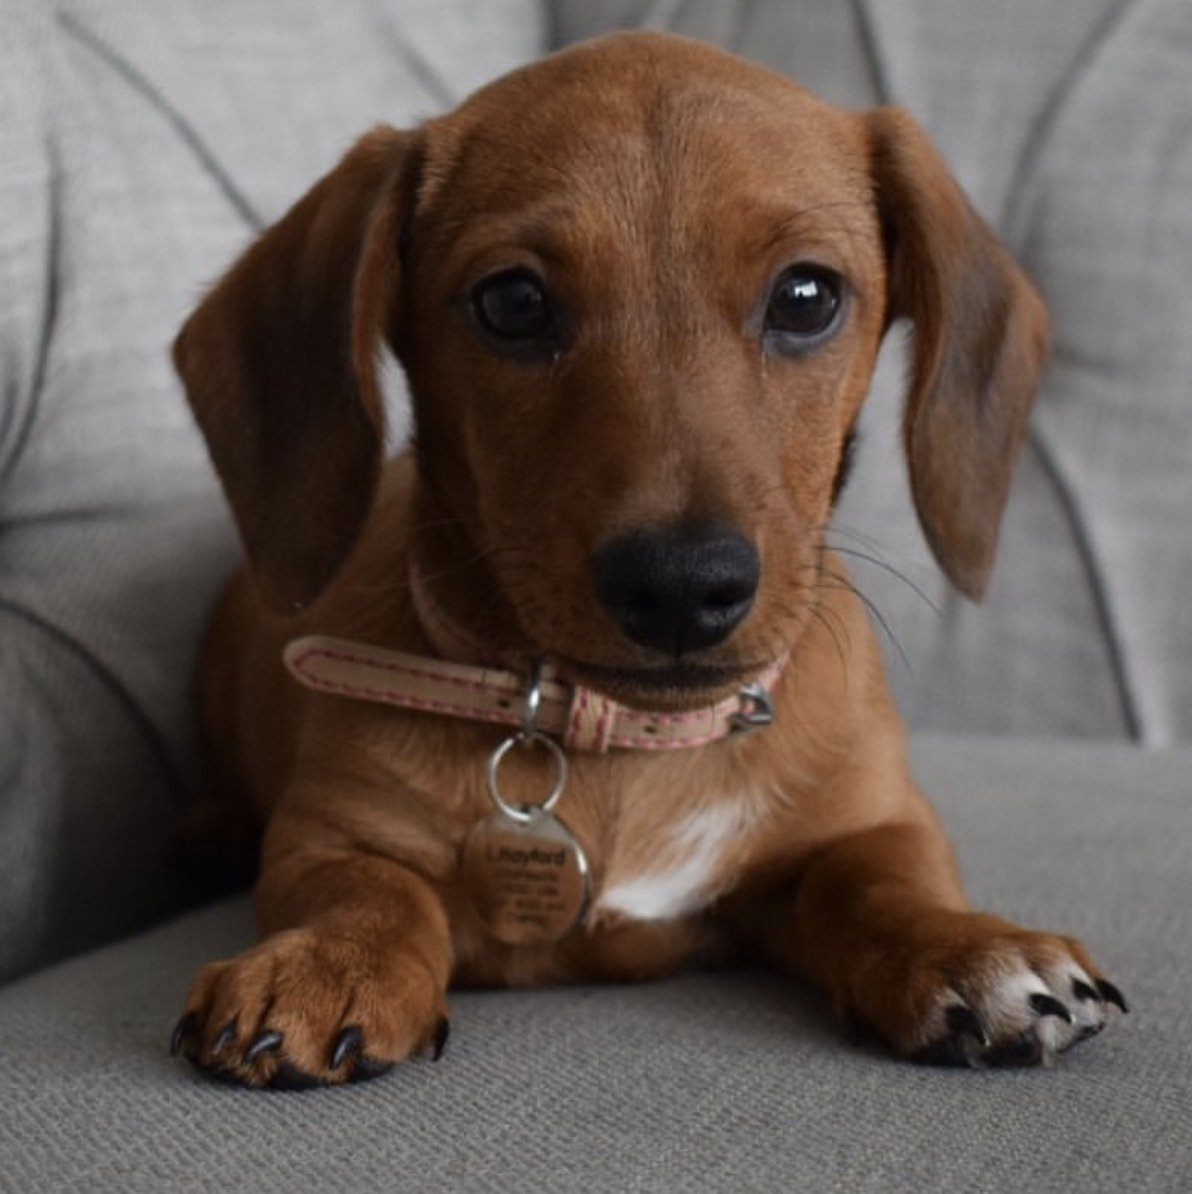 How adorable is Lady in her Rosewood Collar, what a perfect fit! 😍❤️🐾  Thanks for the snap Lady  📸: @all_lady_no_tramp_x  #Rosewoodpet #rosewoodpuppy #puppy #cutie #minisausage #Lady #love #cute #puppiesofinstagram #puppylove #